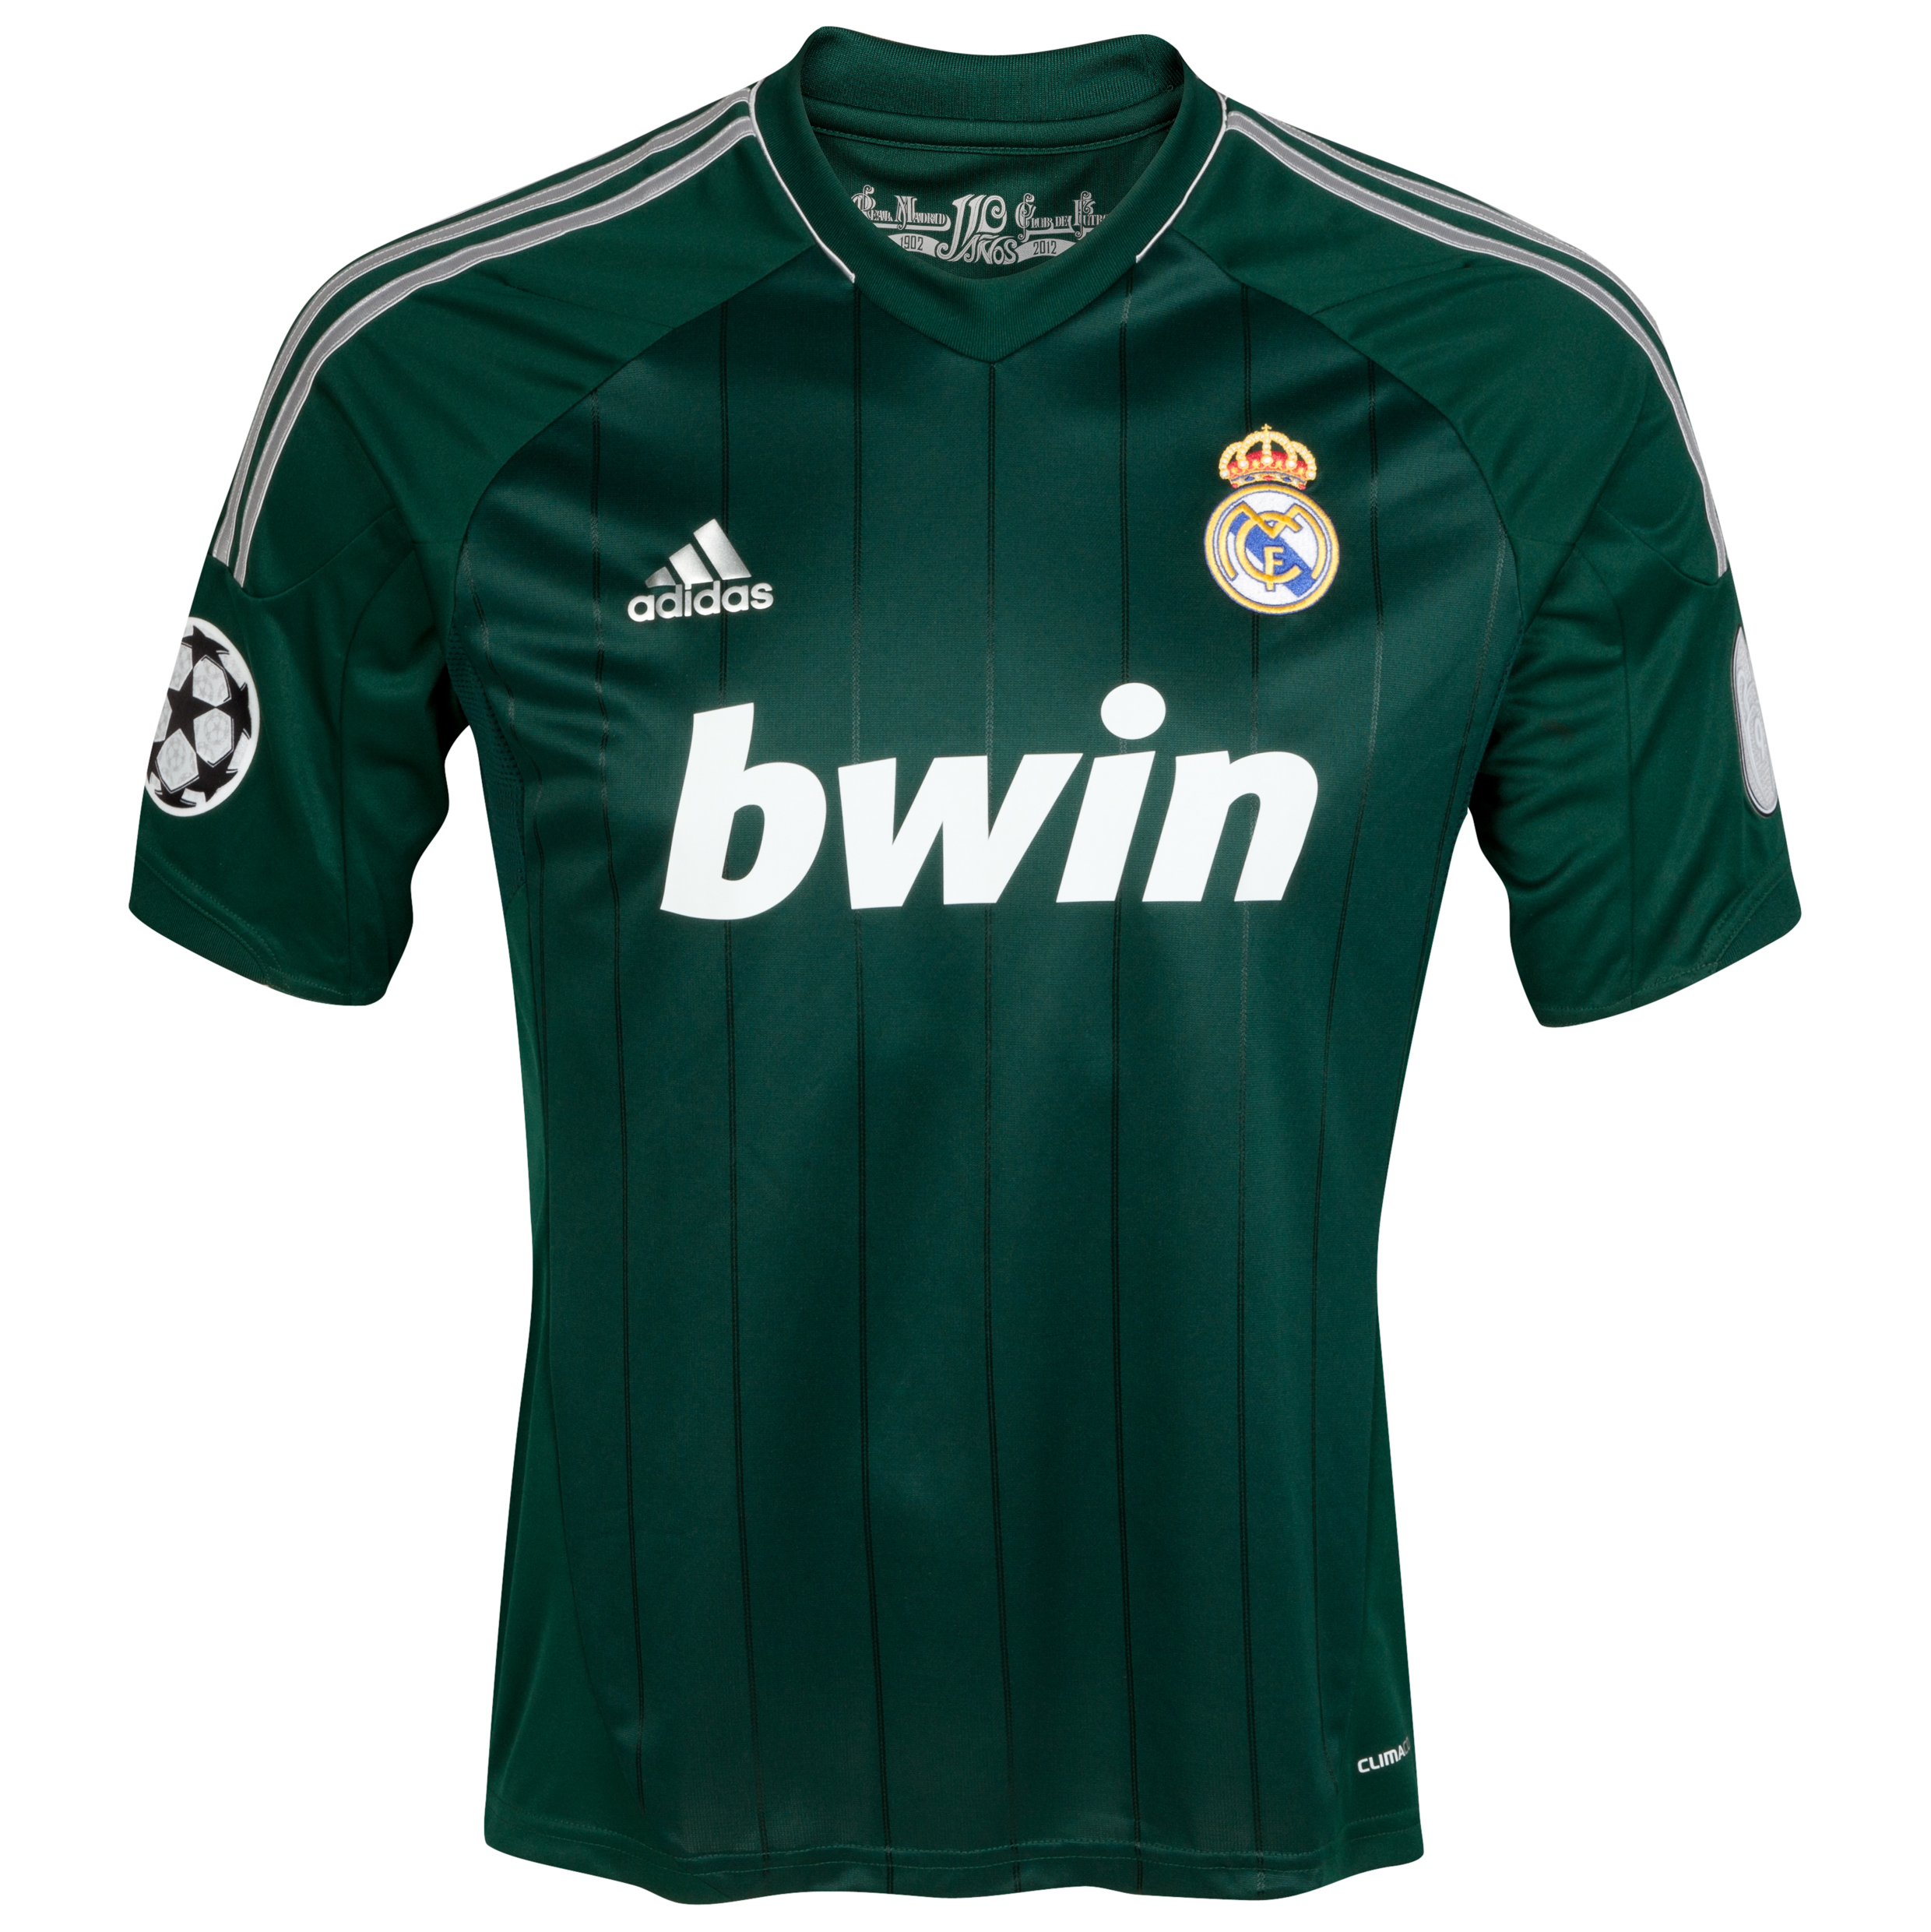 Real Madrid UEFA Champions League Third Shirt 2012/13